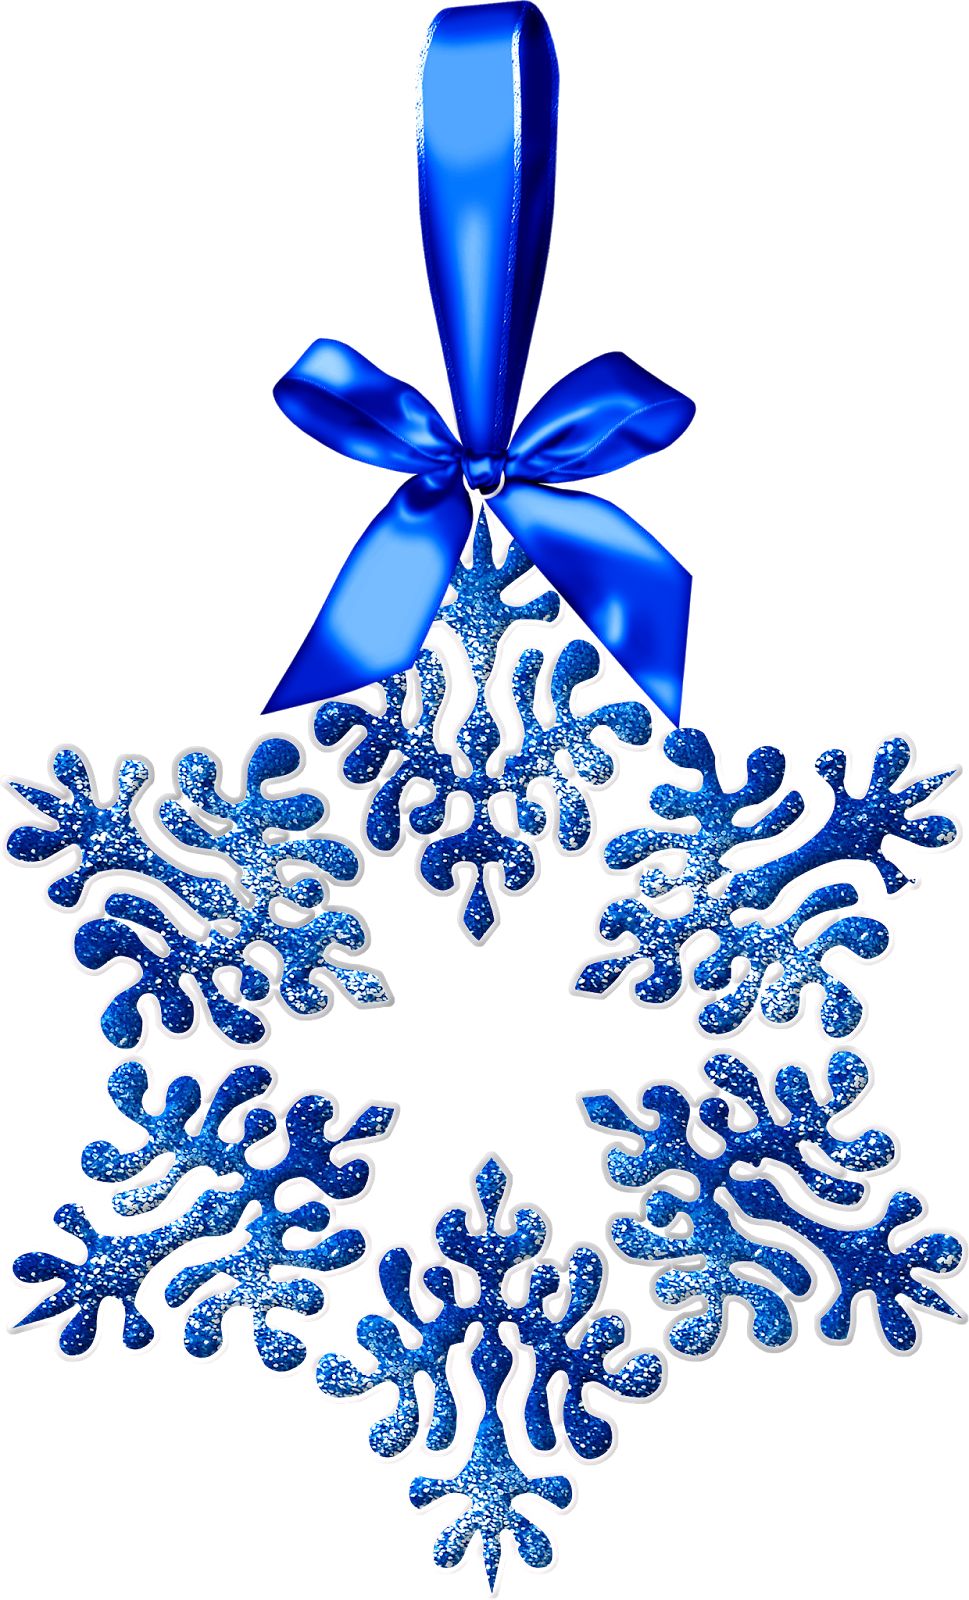 Blue snowflake garland clipart clipart freeuse library 93f03-2.png (969×1600) | Scrap book, scrapbooking, elementos digital ... clipart freeuse library